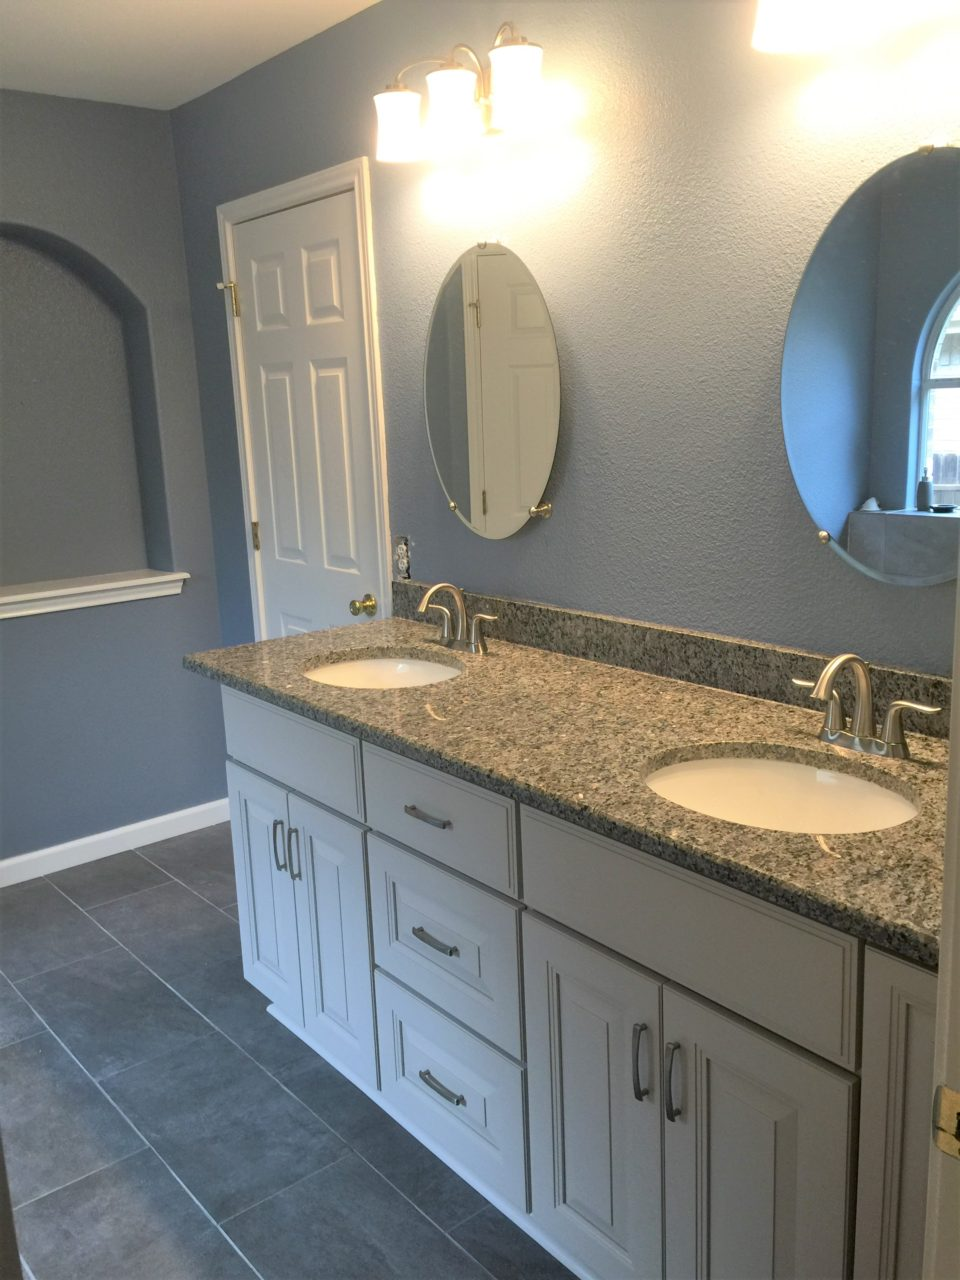 Bathroom remodeling san antonio contractor alamo heights bathroom cabinets stone oak bathroom sinks boerne bathroom renovation alamo ranch bathroom countertops vanity